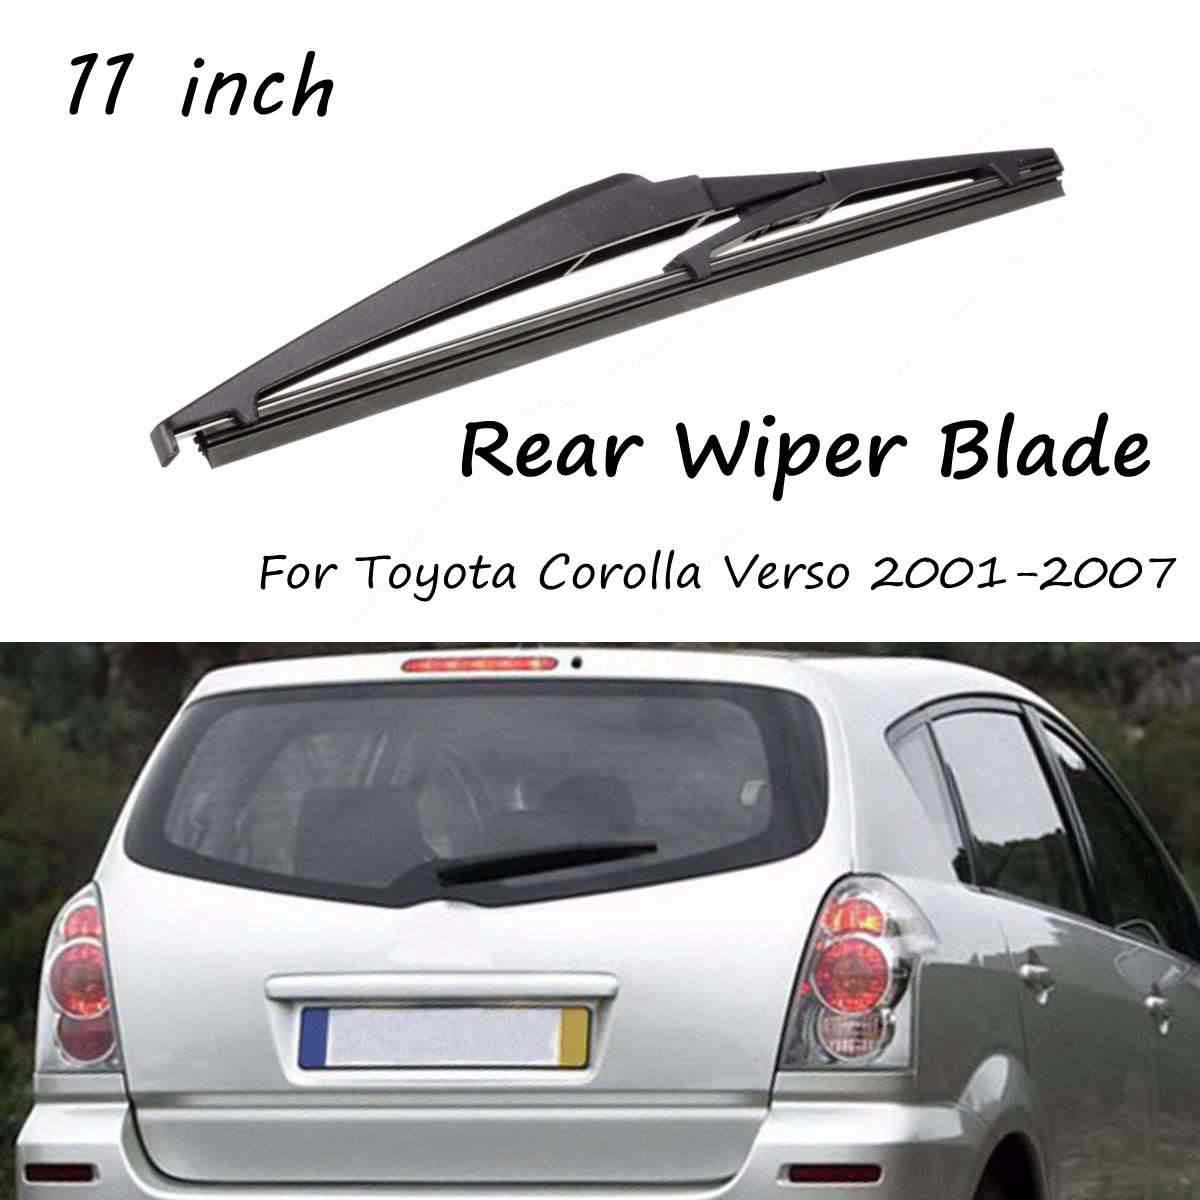 Rear Wiper Blade Car Windshield 11/283mm Fit For Toyota Corolla Verso 2004 2005 2006 2007 Replacement Windscreen Window Washer